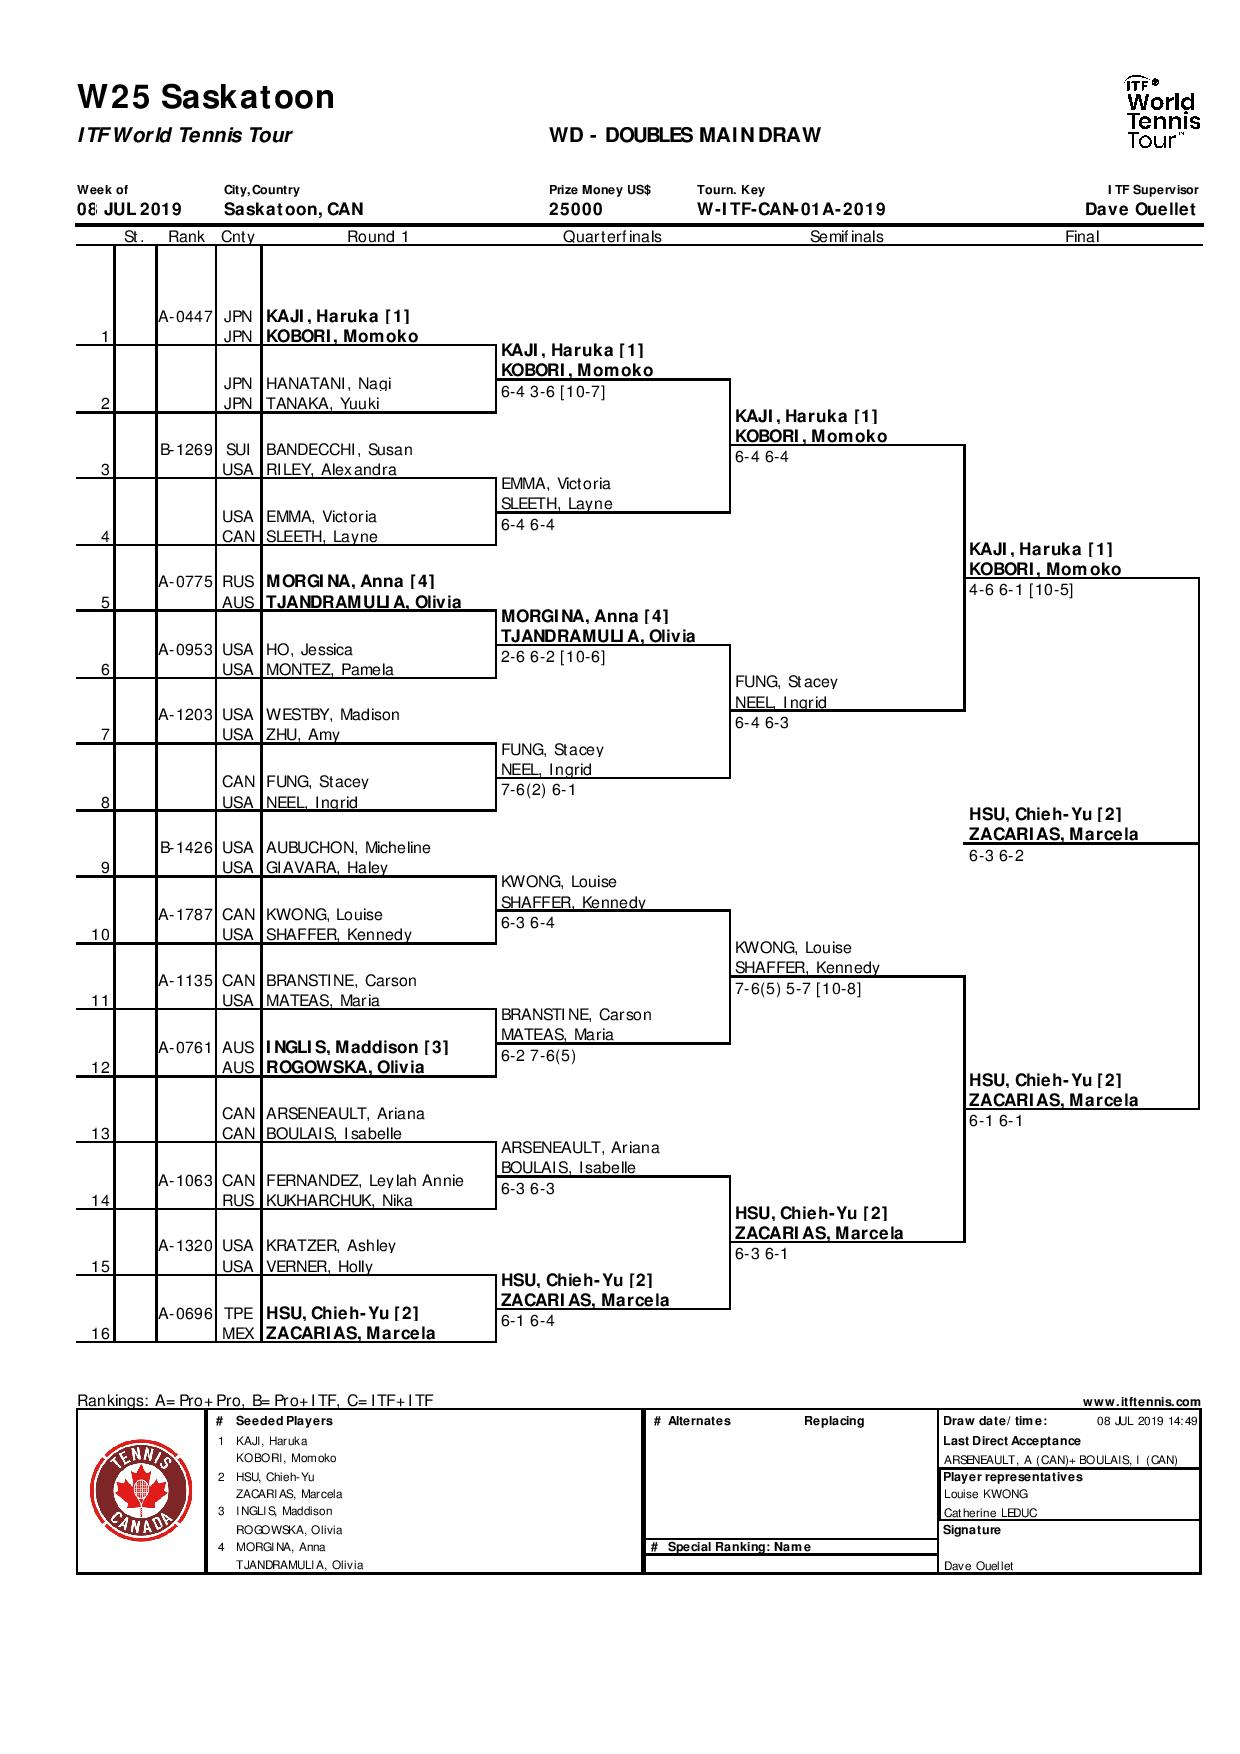 W-ITF-CAN-01A-2019 Doubles Main Draw-page-001.jpg